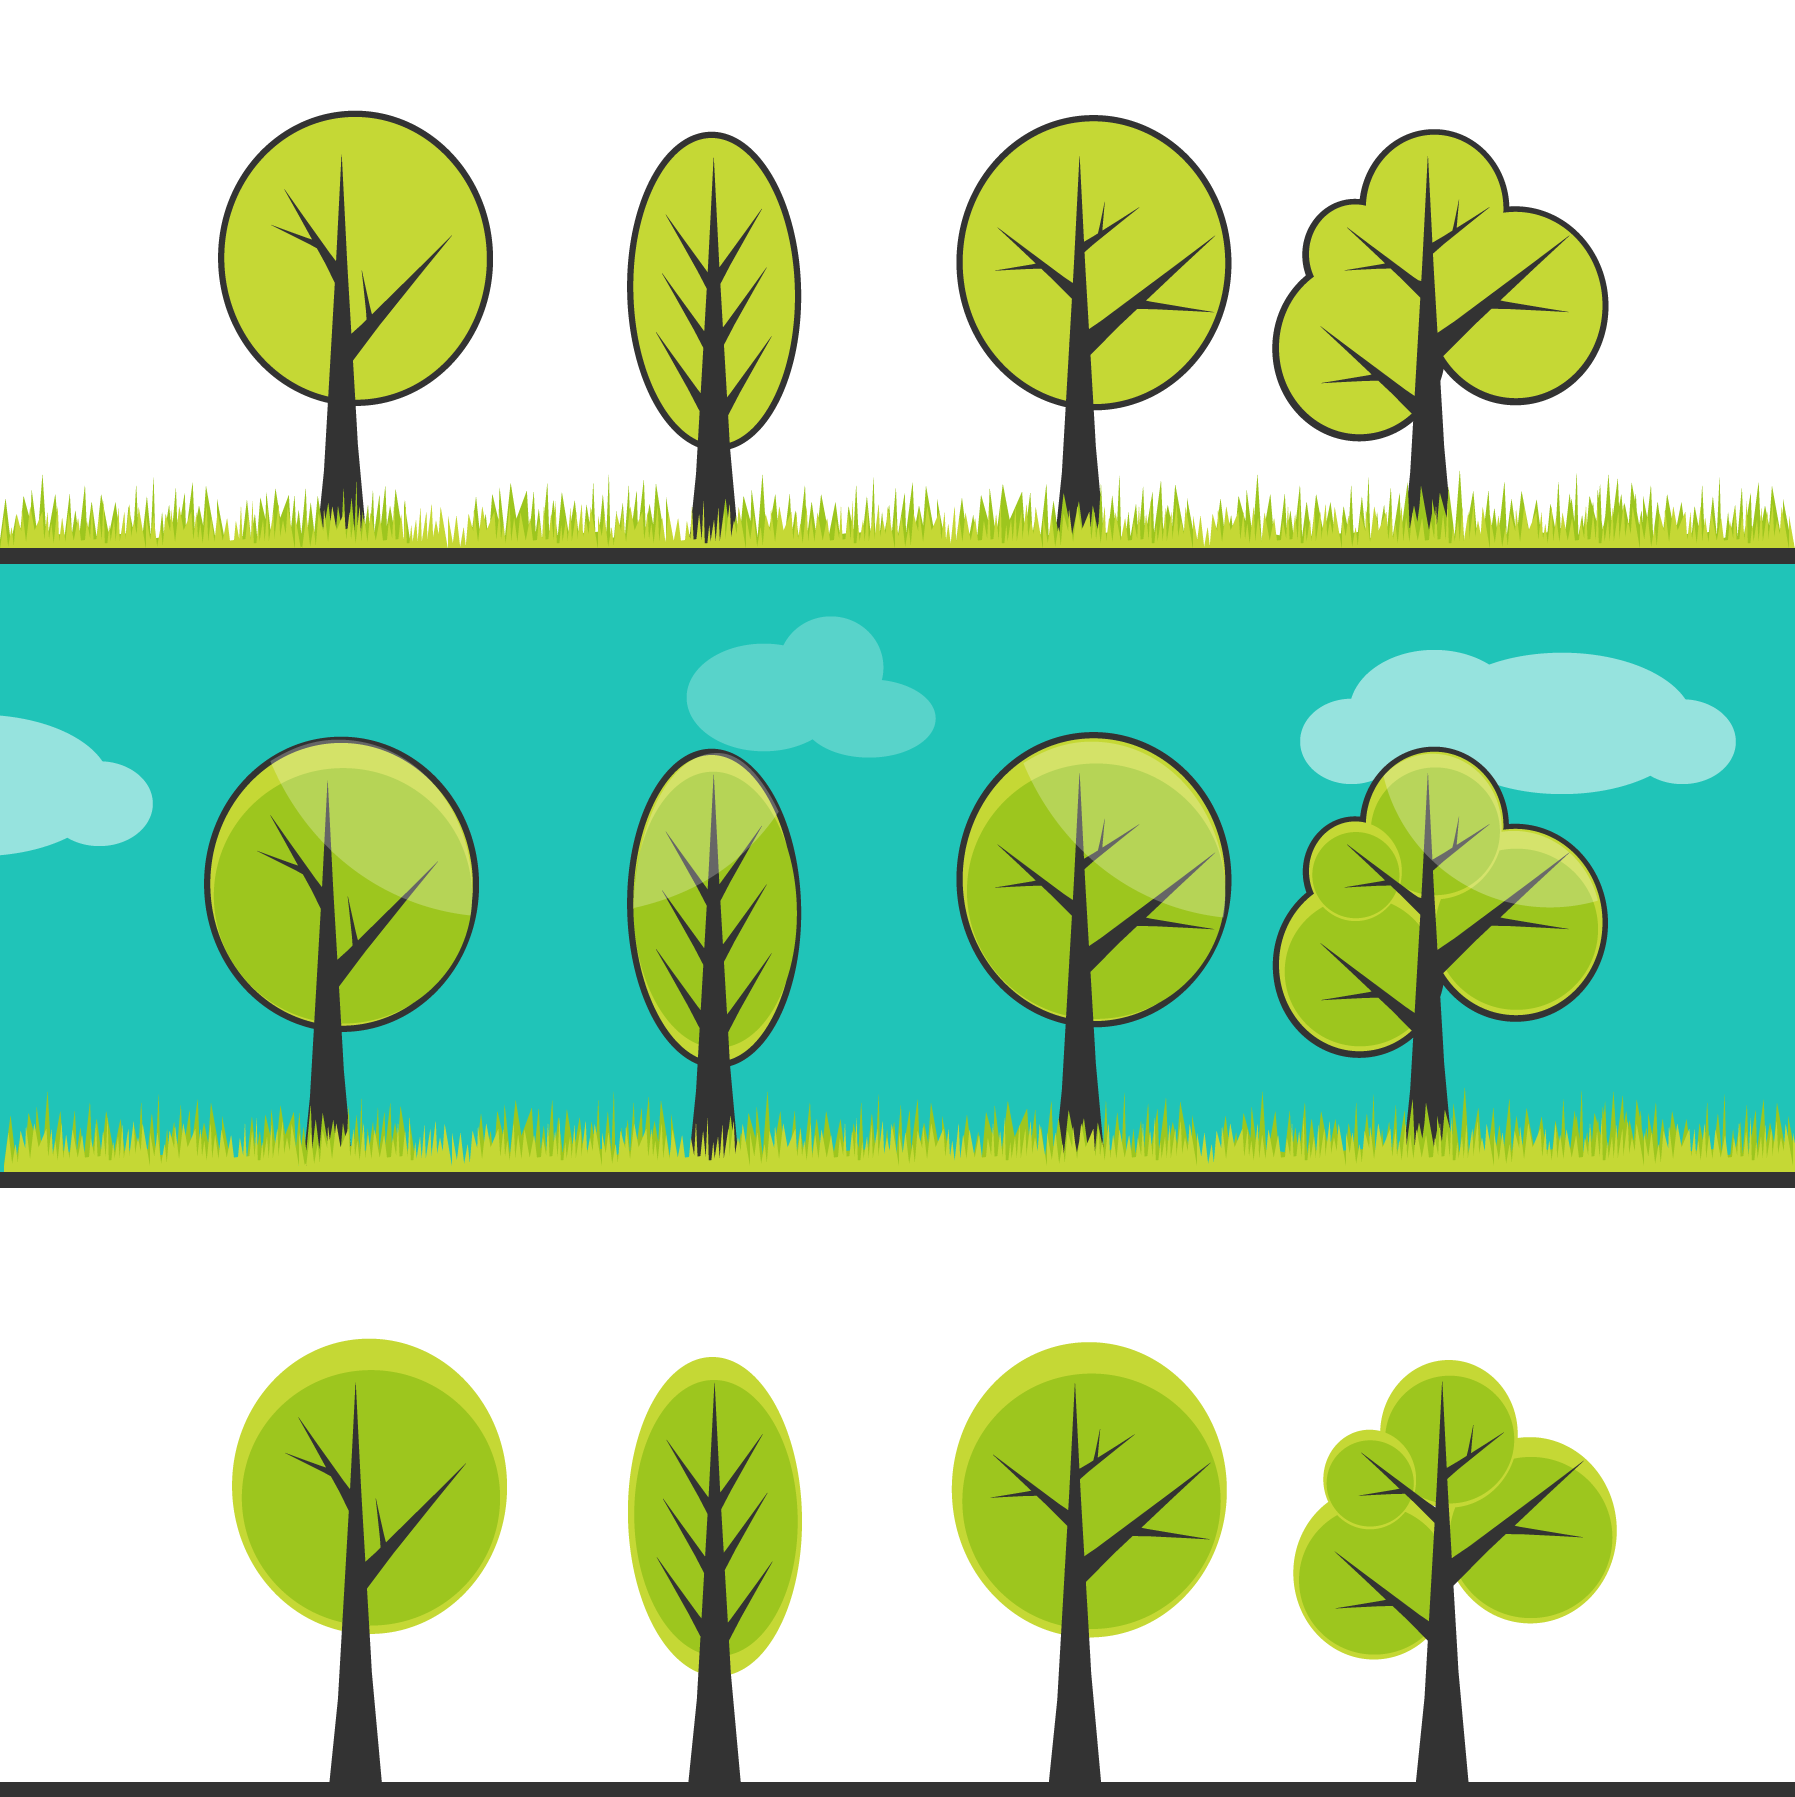 By trees limited clipart #2